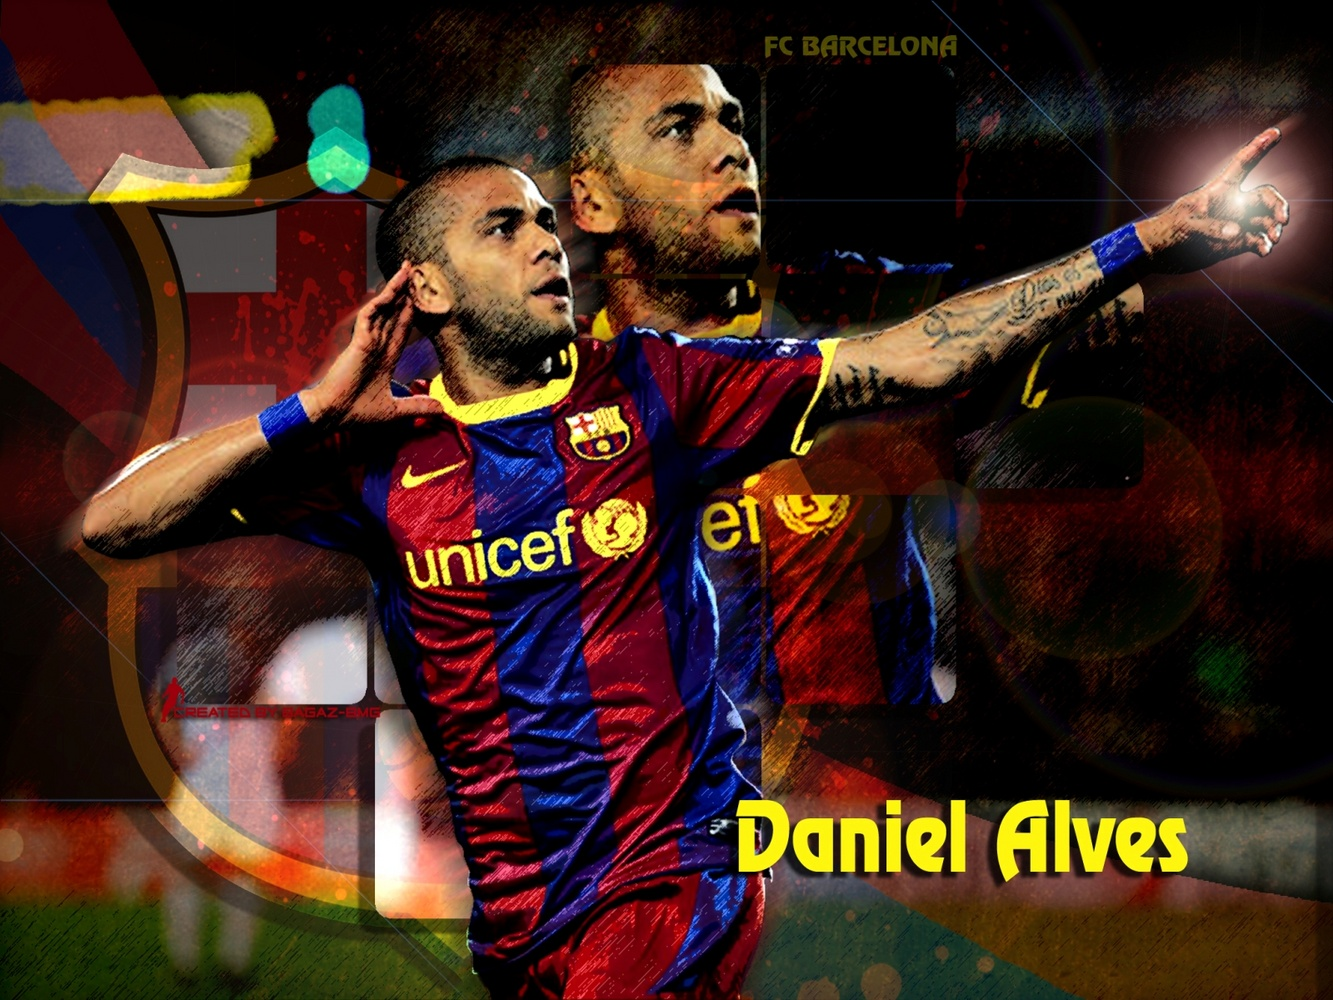 Football Wallpapers 2013 Dani Alves Hd 2012 Wallpapers picture wallpaper image